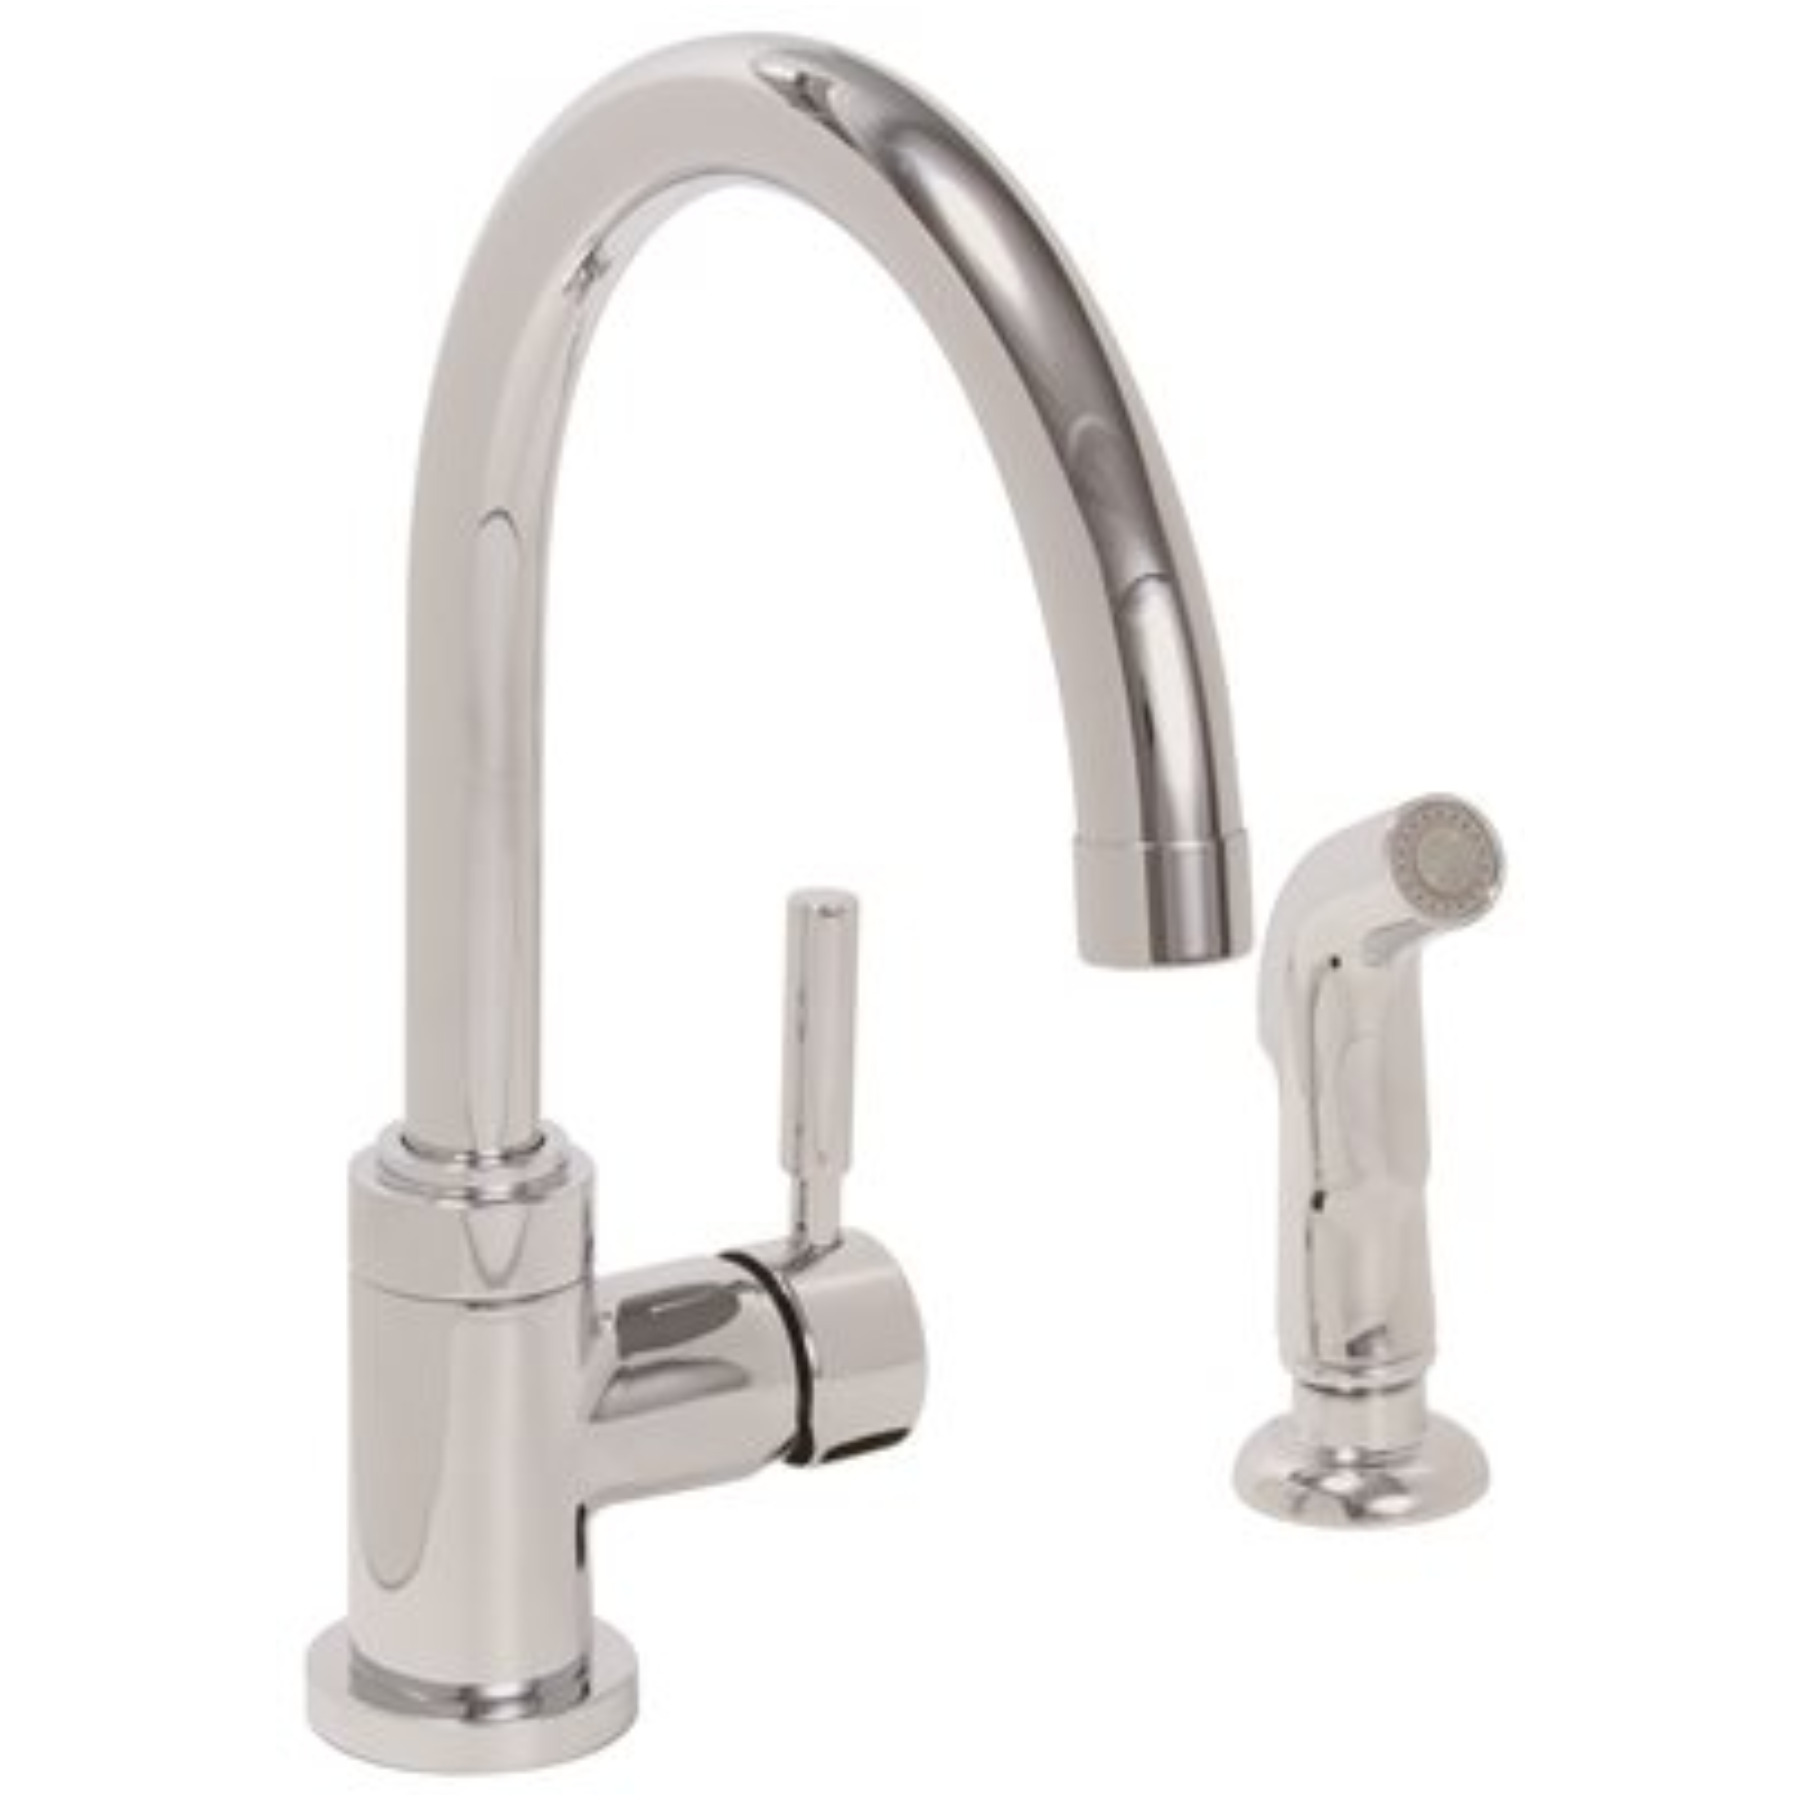 PREMIER� ESSEN� KITCHEN FAUCET WITH PULL-DOWN, SINGLE LEVER HANDLE AND SOAP DISPENSER, 1.8 GPM, BRUSHED NICKEL, LEAD FREE*